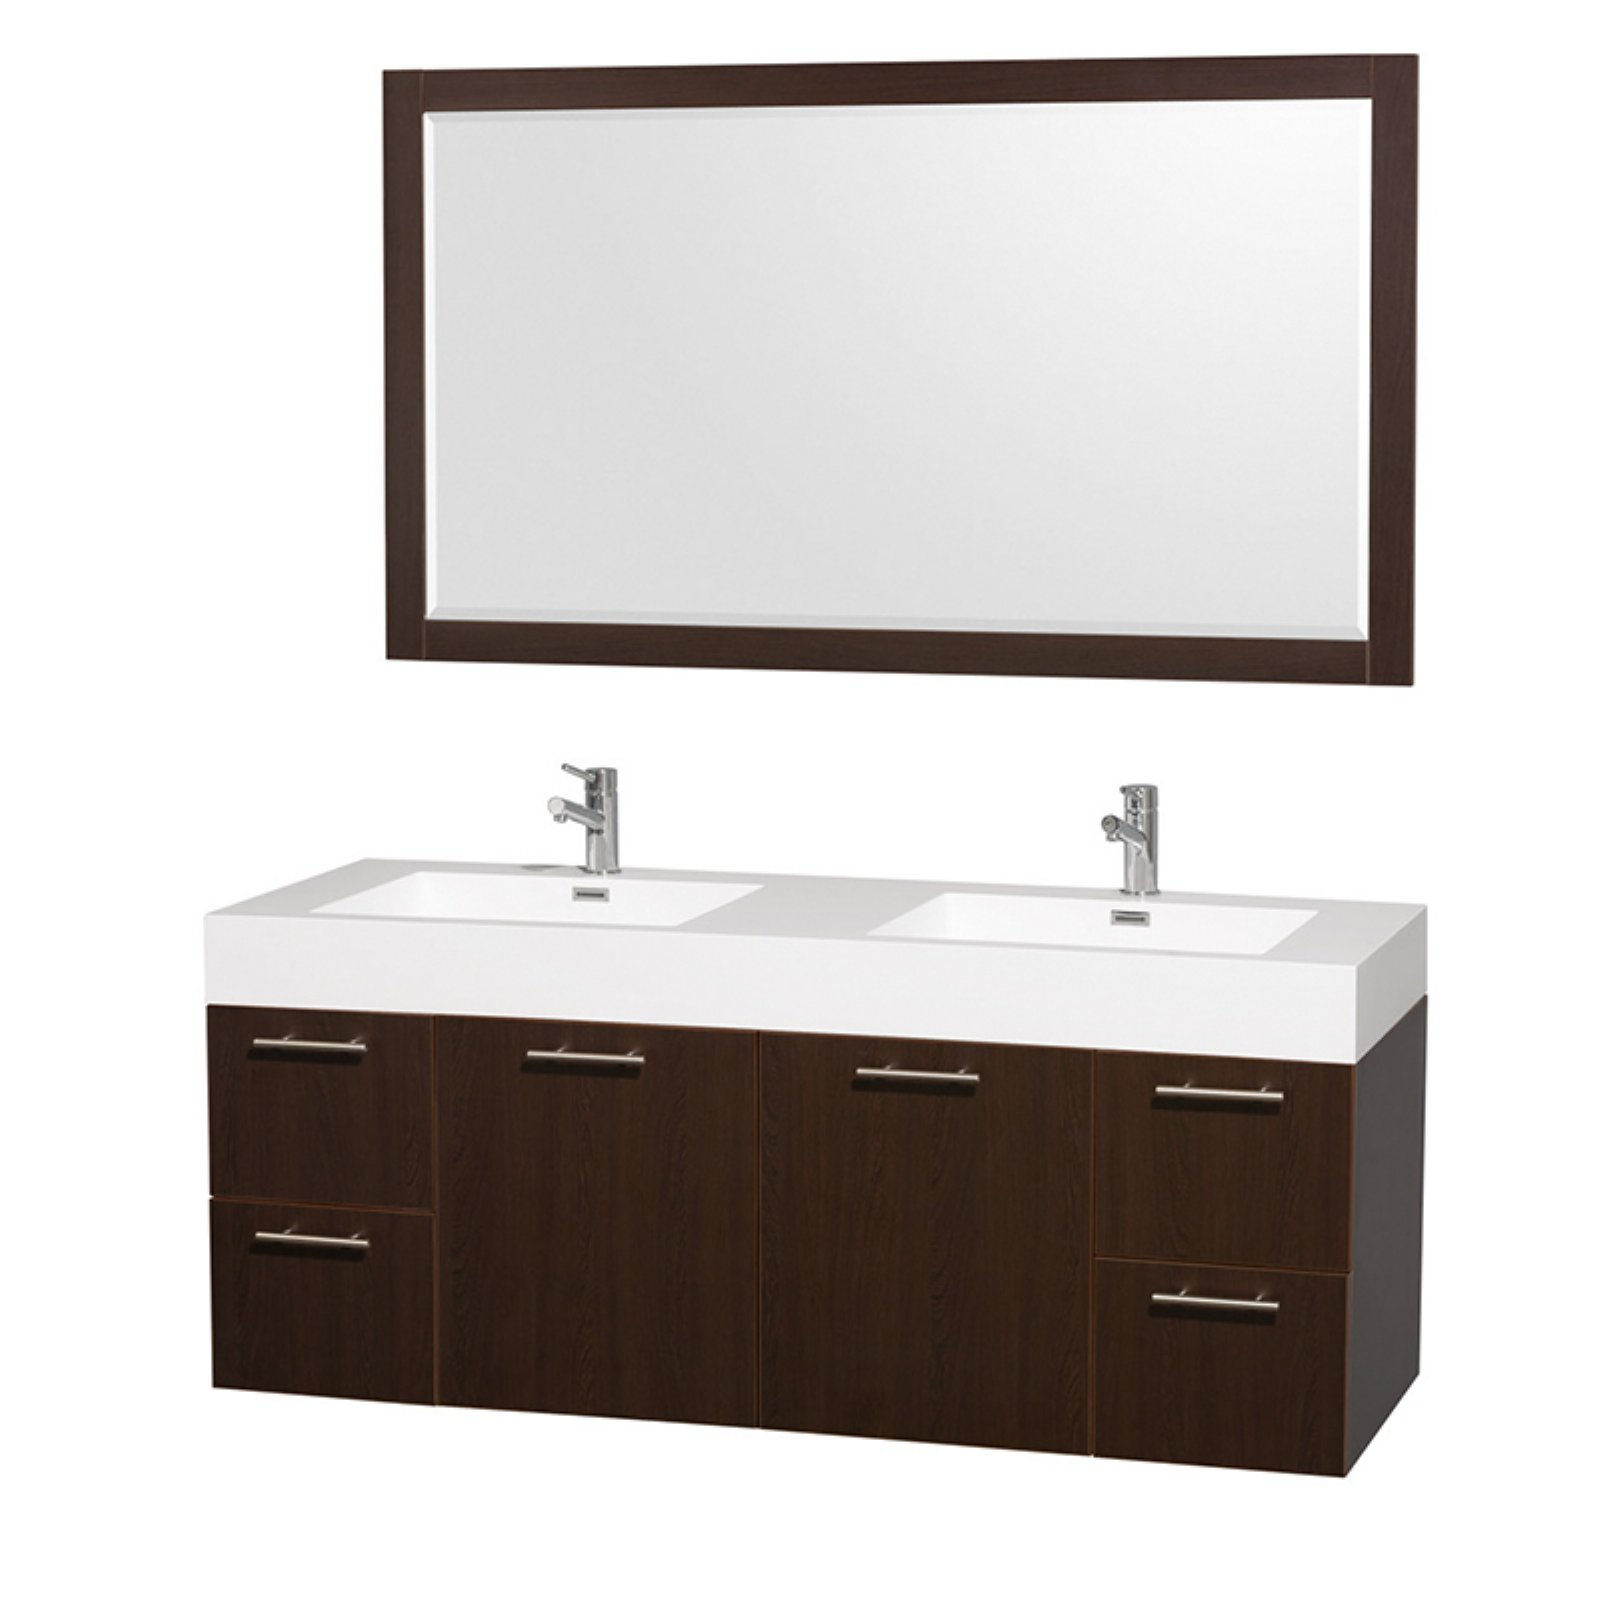 Wyndham Collection Amare 60 inch Double Bathroom Vanity in Espresso with Acrylic Resin Top, Integrated Sinks, and 58 inch Mirror